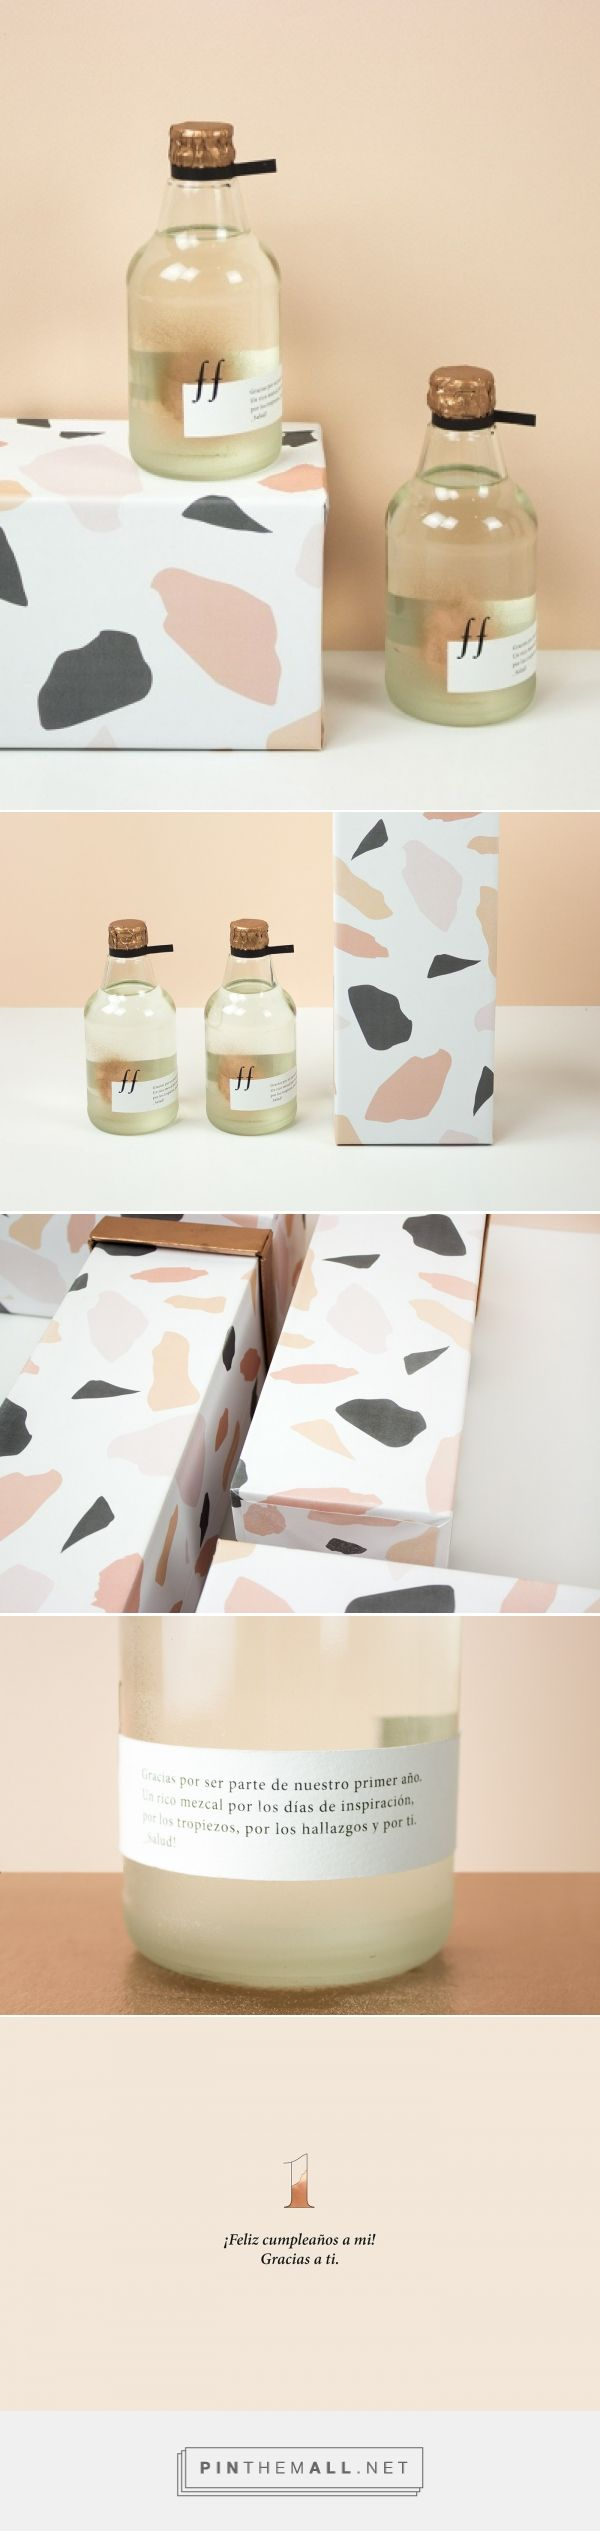 Cumpleaños Feliz Packaging - Mindsparkle Mag - created via https://pinthemall.net